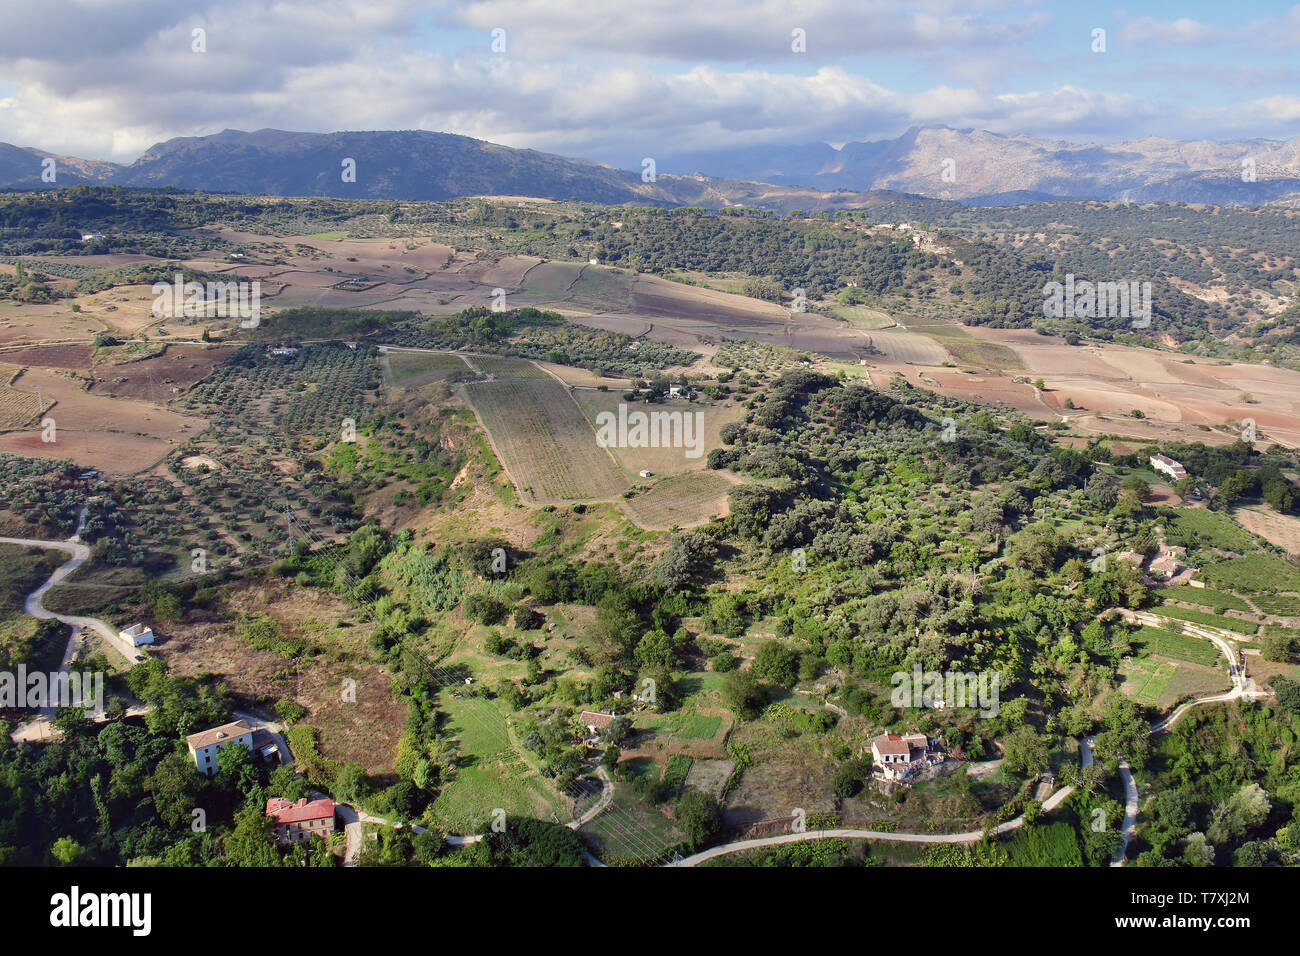 Landscape, Ronda, Andalucía, Andalusia, Spain - Stock Image